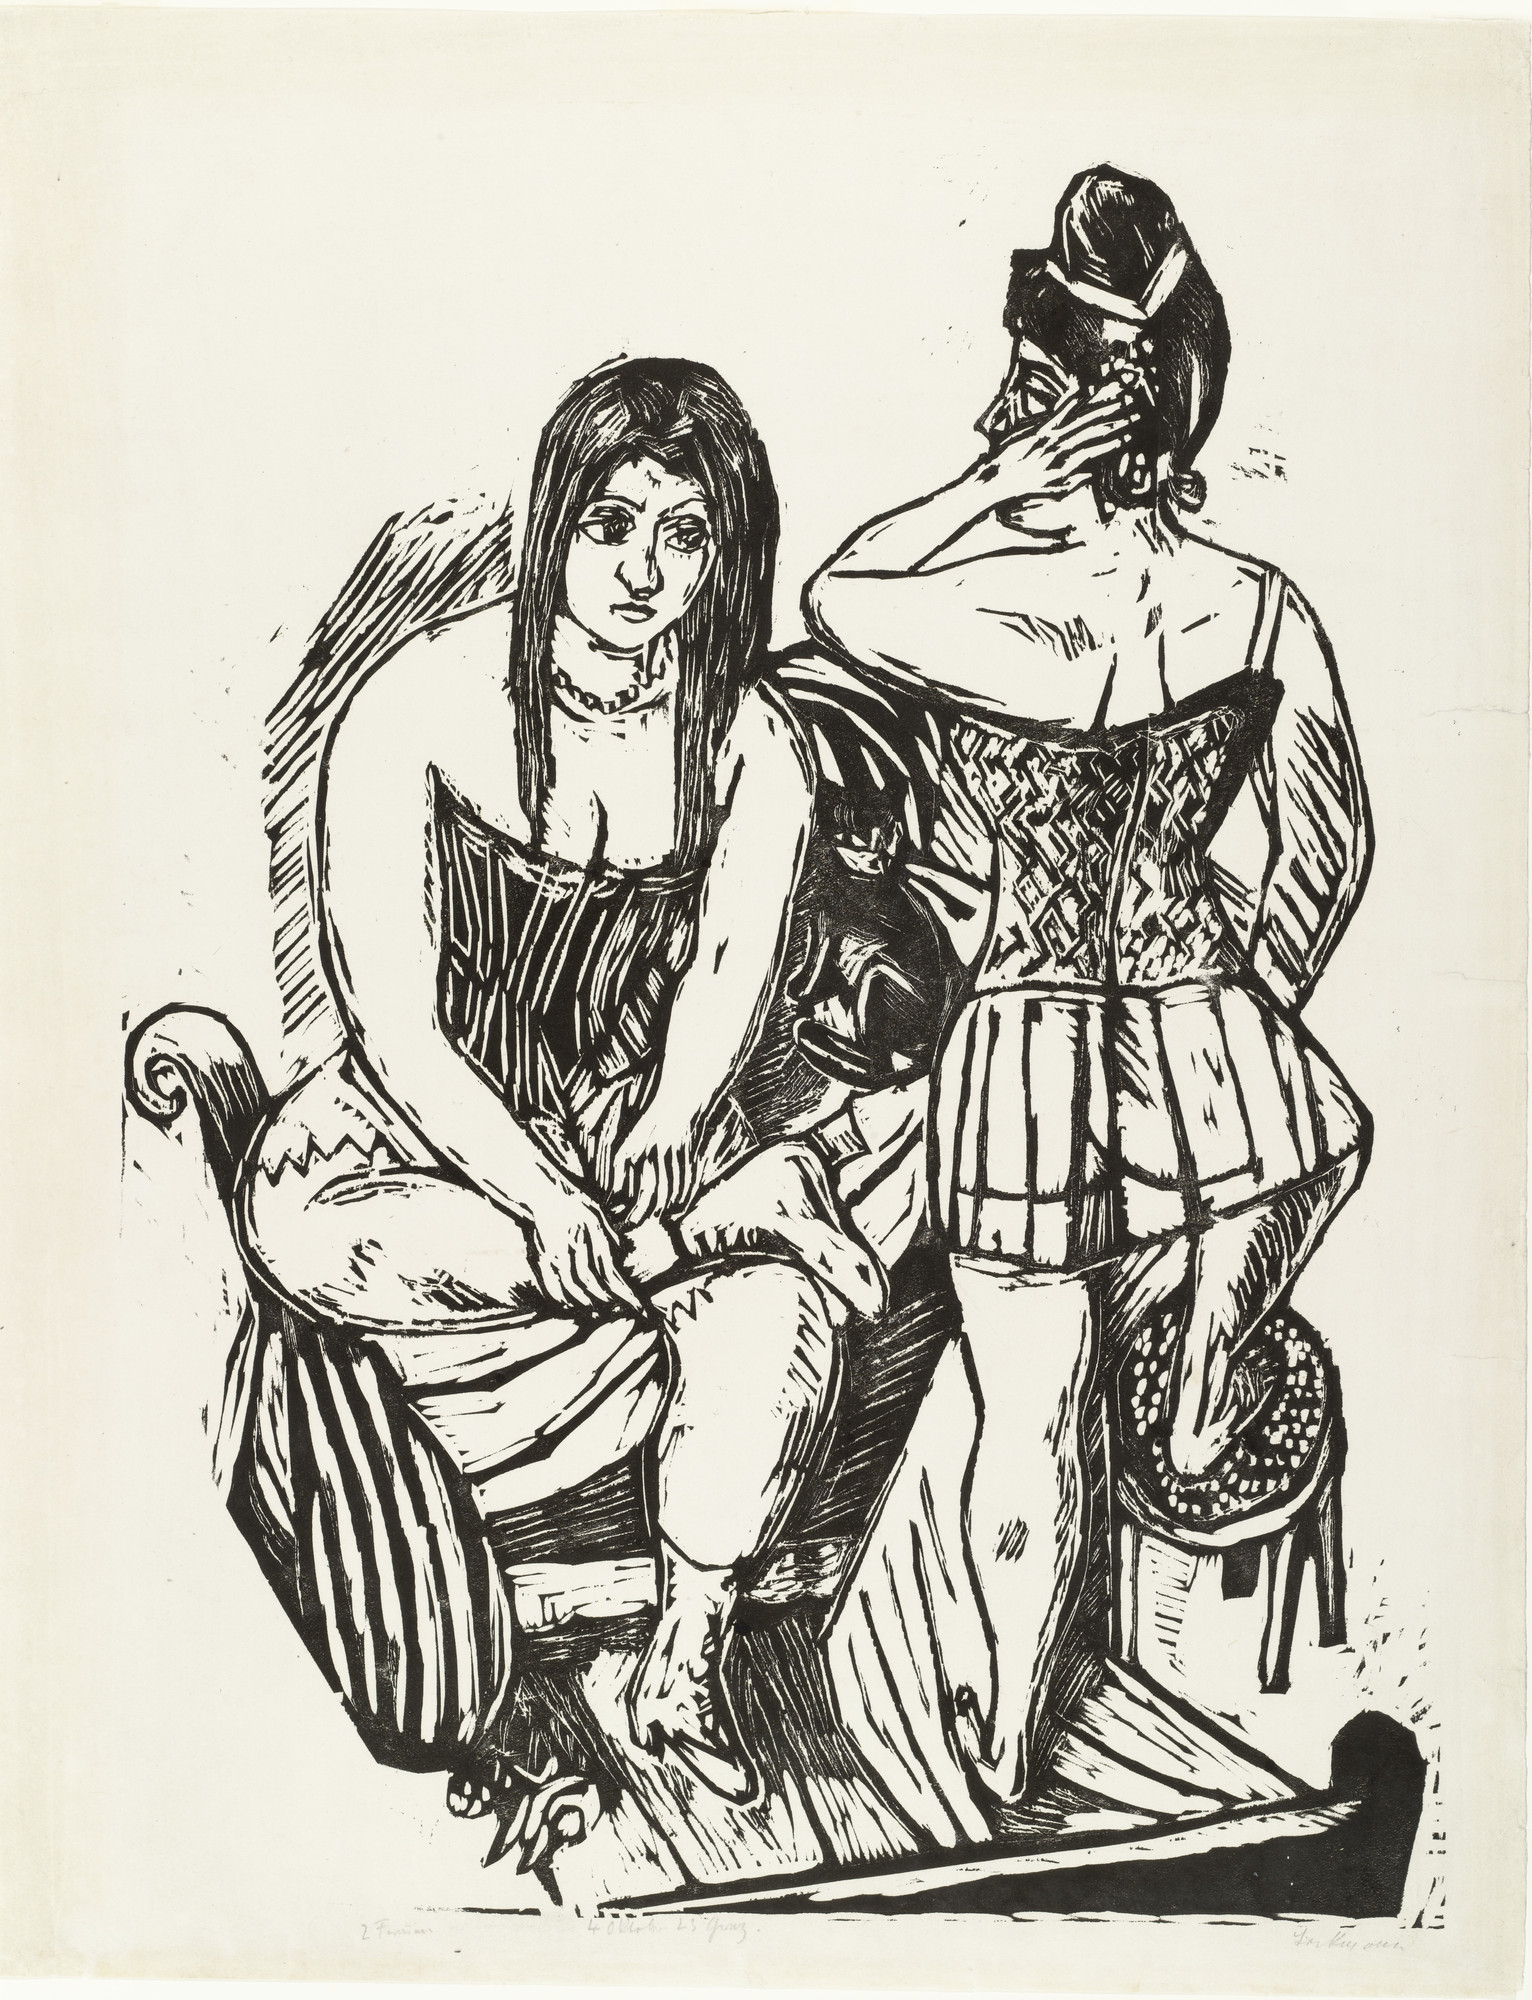 Max Beckmann. At the Toilette (Bei der Toilette). 1923 (published 1924)